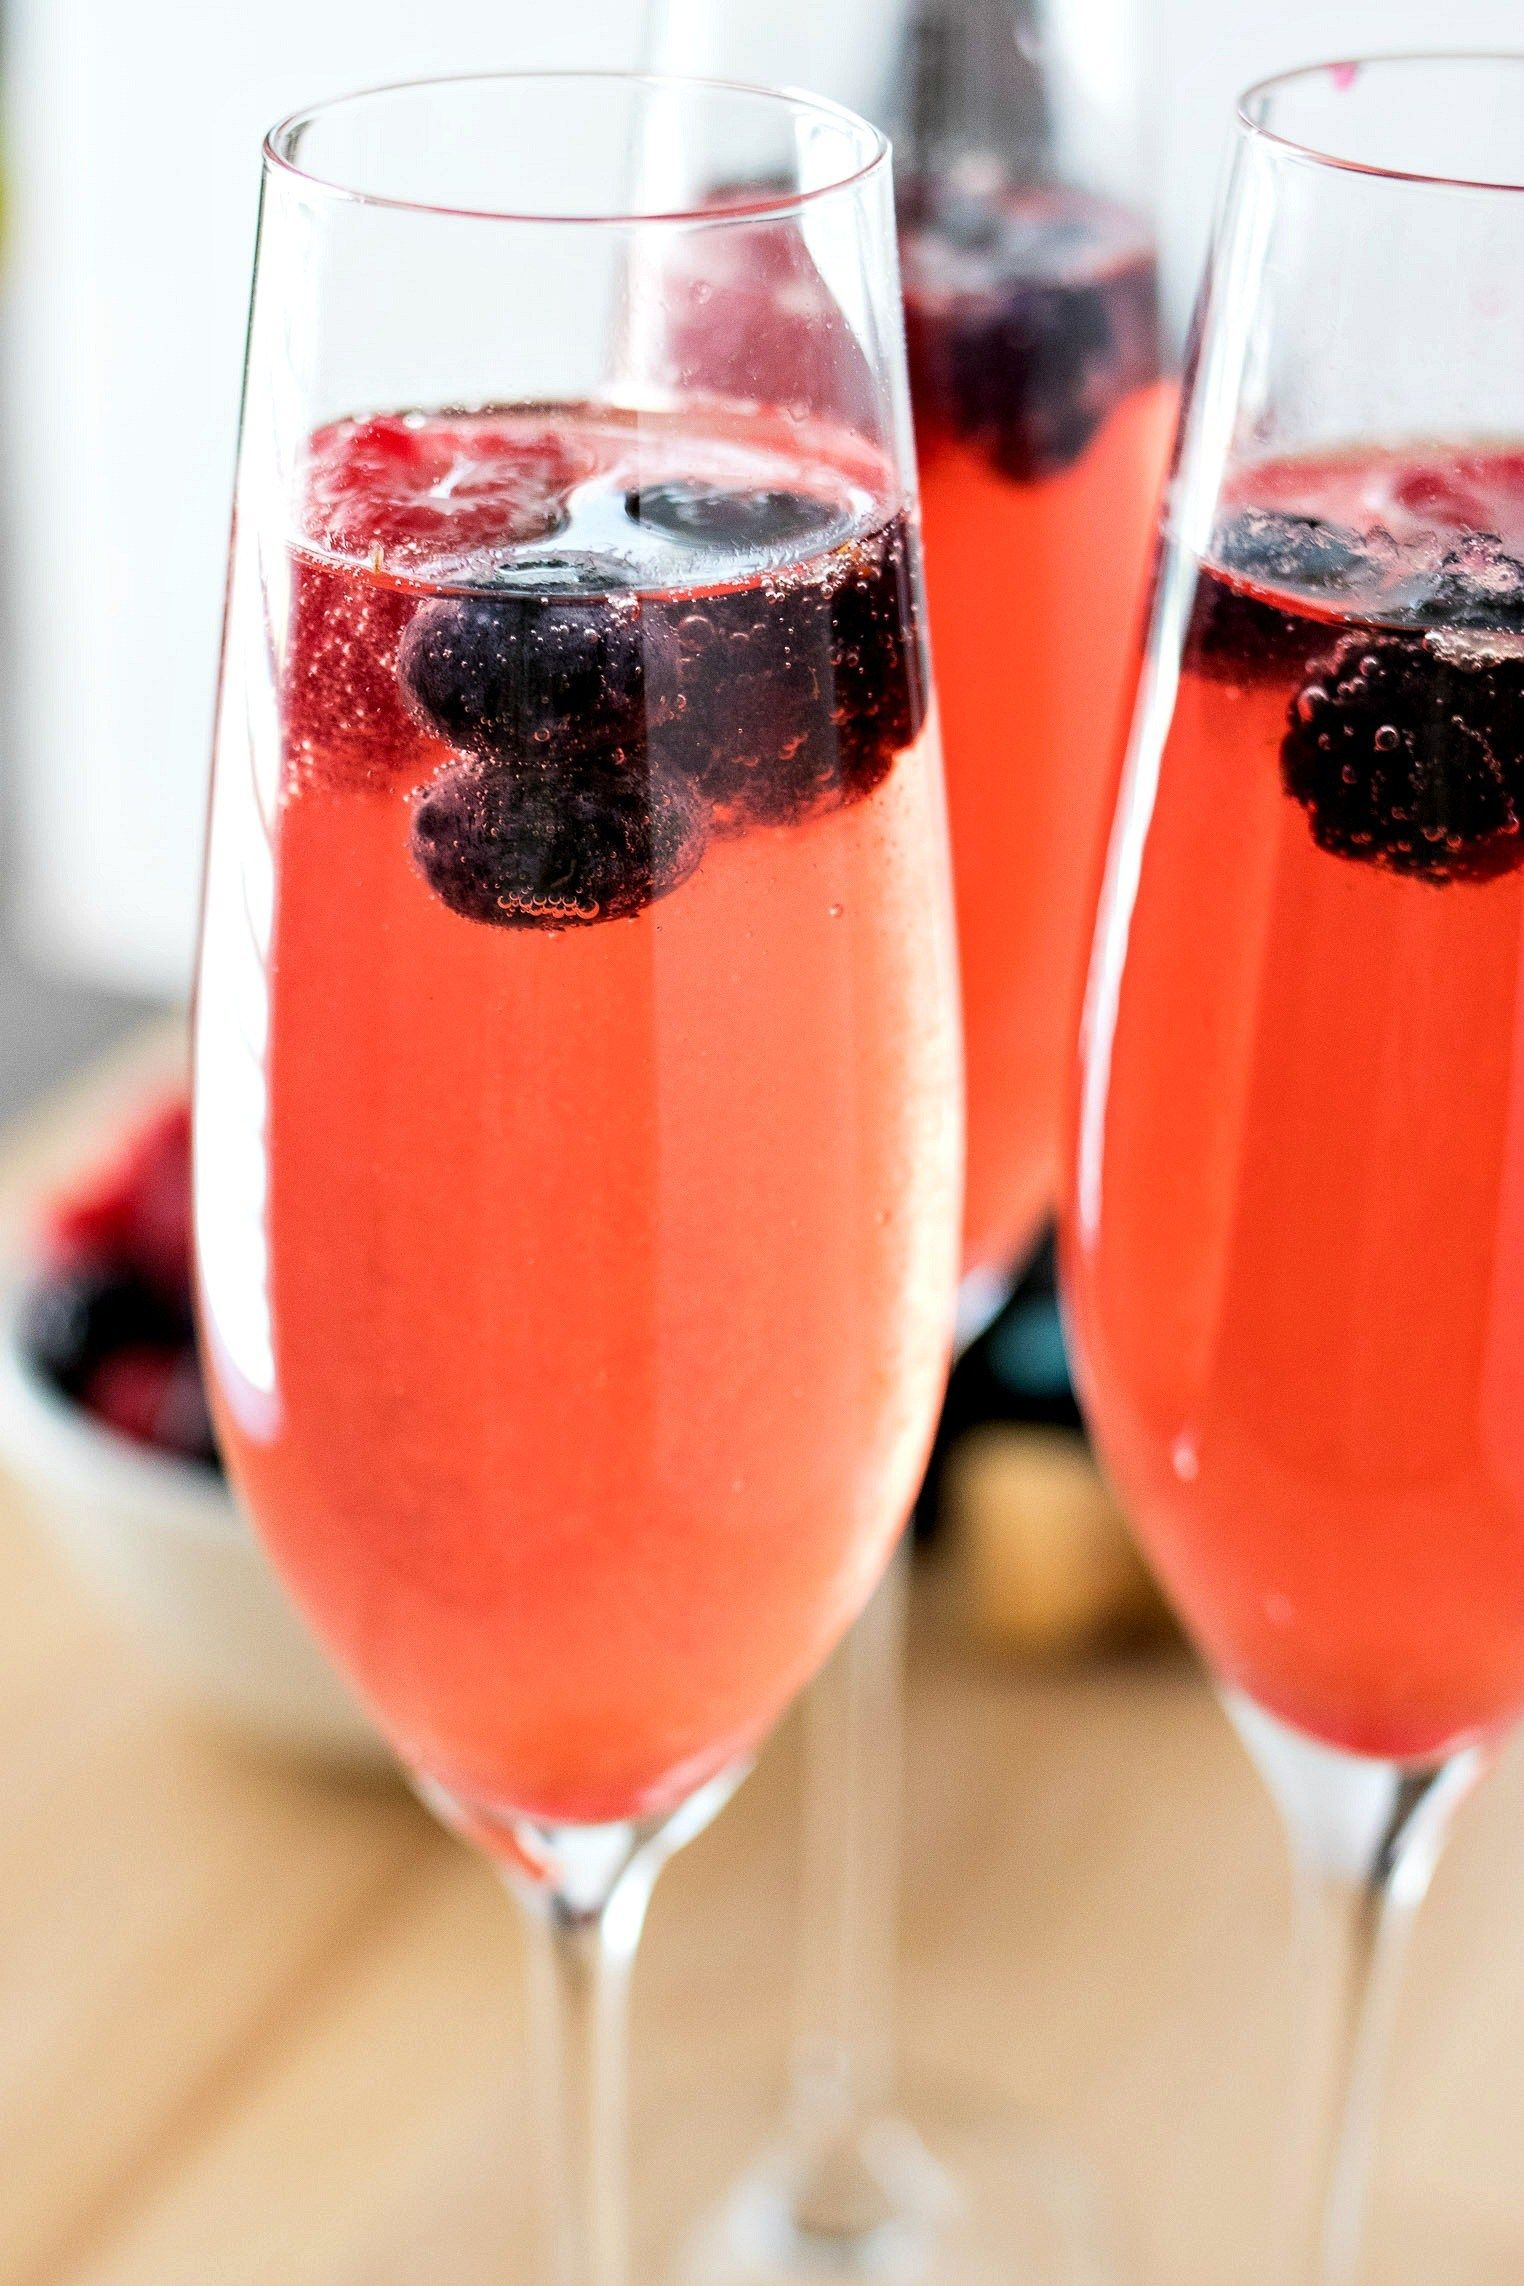 Berry Mimosas A Refreshing And Simple Mimosa Made With Mixed Berry Simple Syrup And Prosecco Or Champagne Garni Tea Party Food Christmas Tea Party Berry Tea